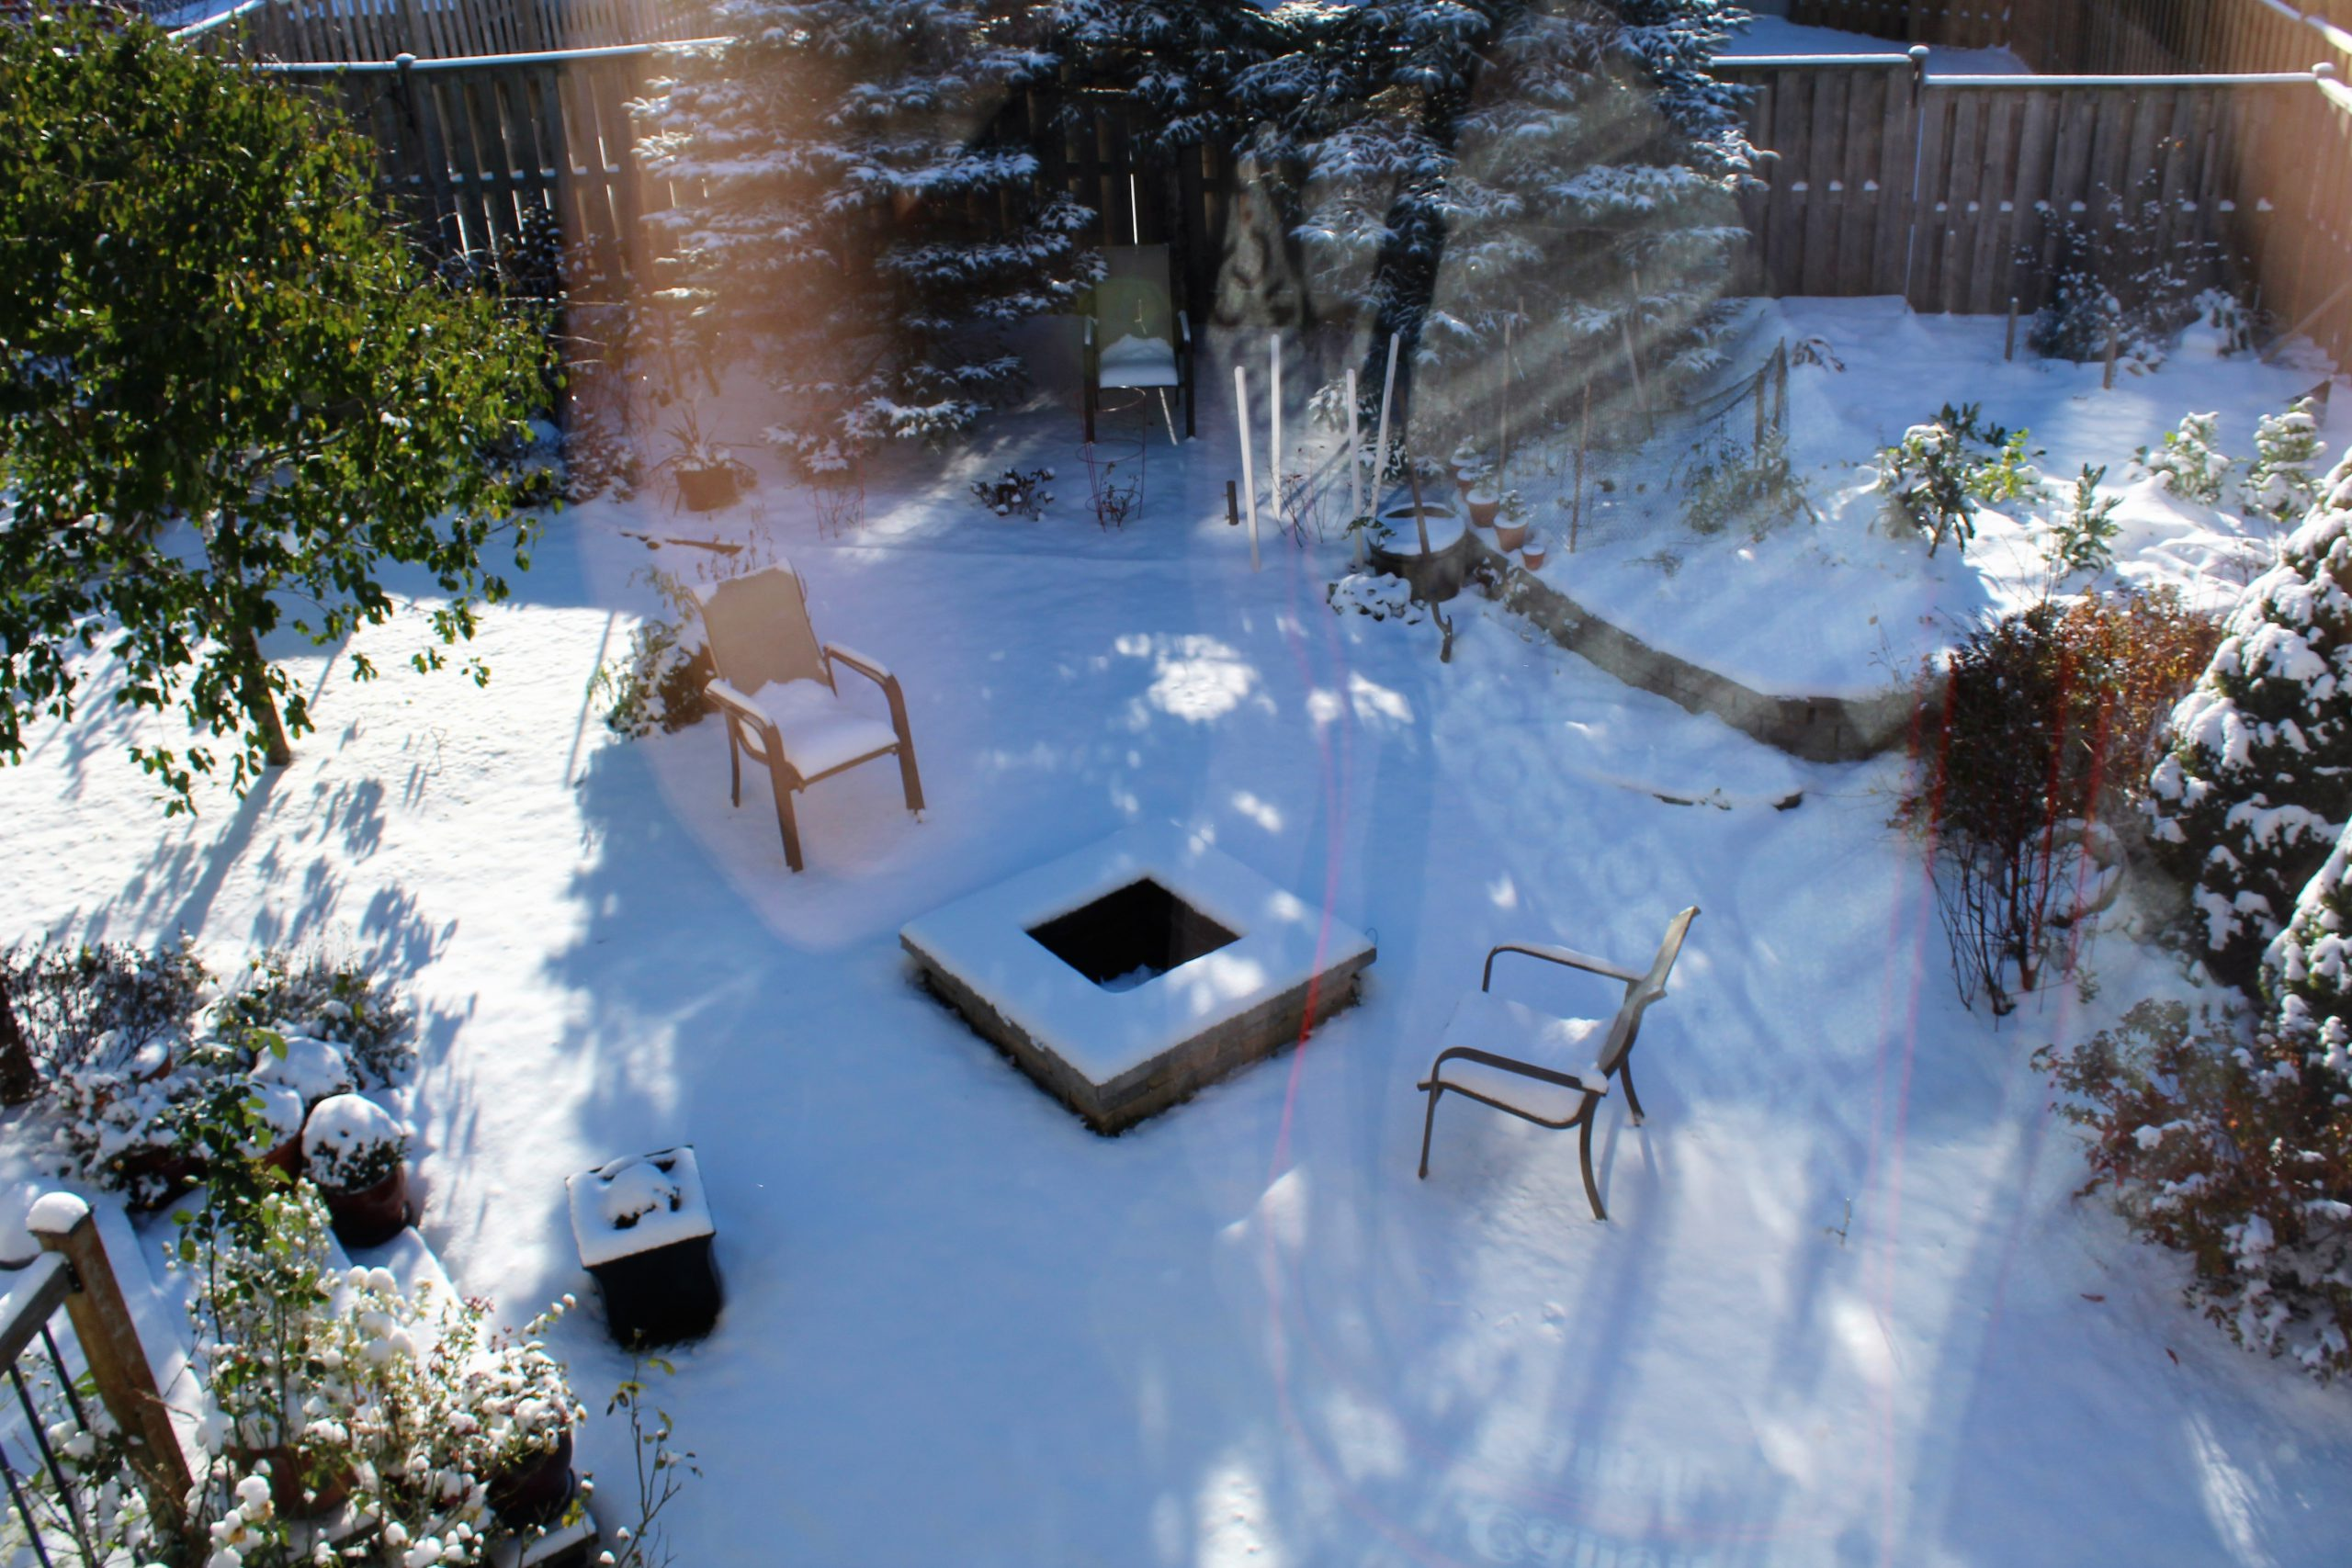 Winter backyard photo